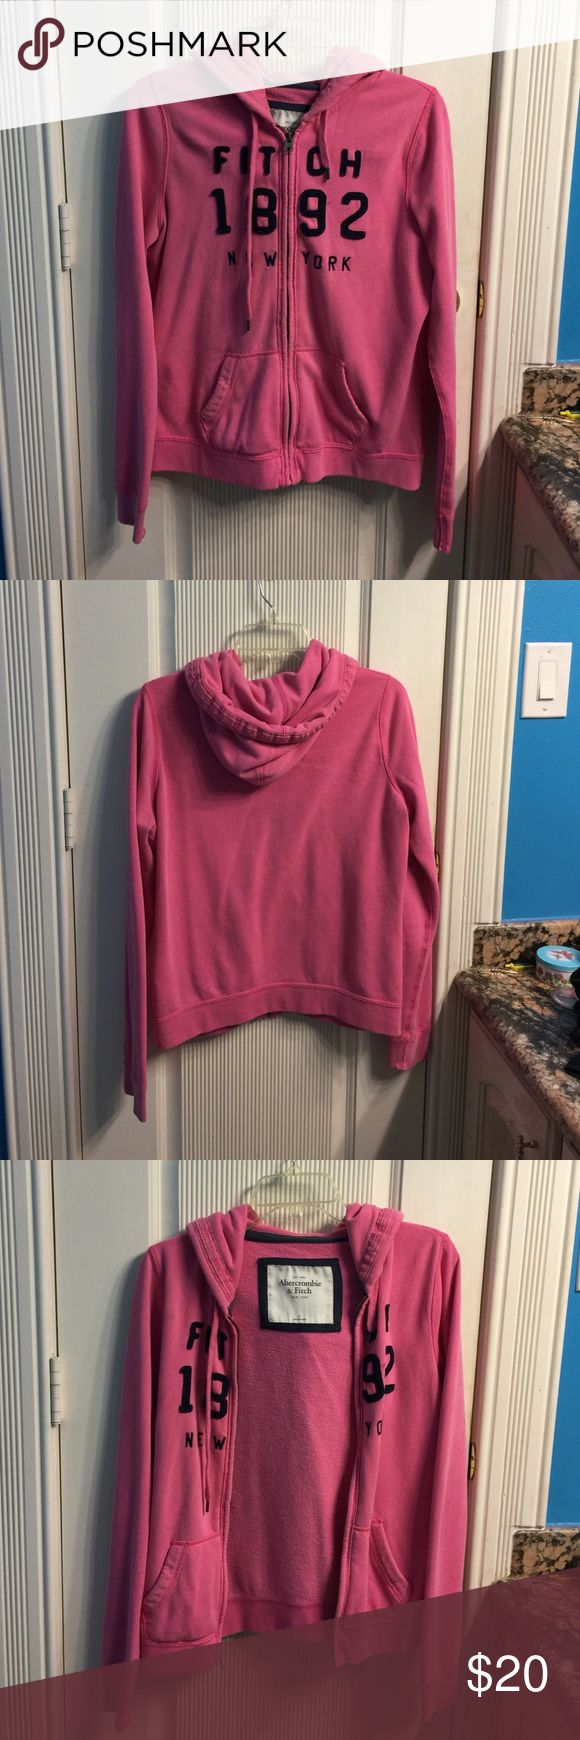 Abercrombie and Fitch Jacket a gently used abercrombie and fitch pink jacket get for school! Abercrombie & Fitch Jackets & Coats